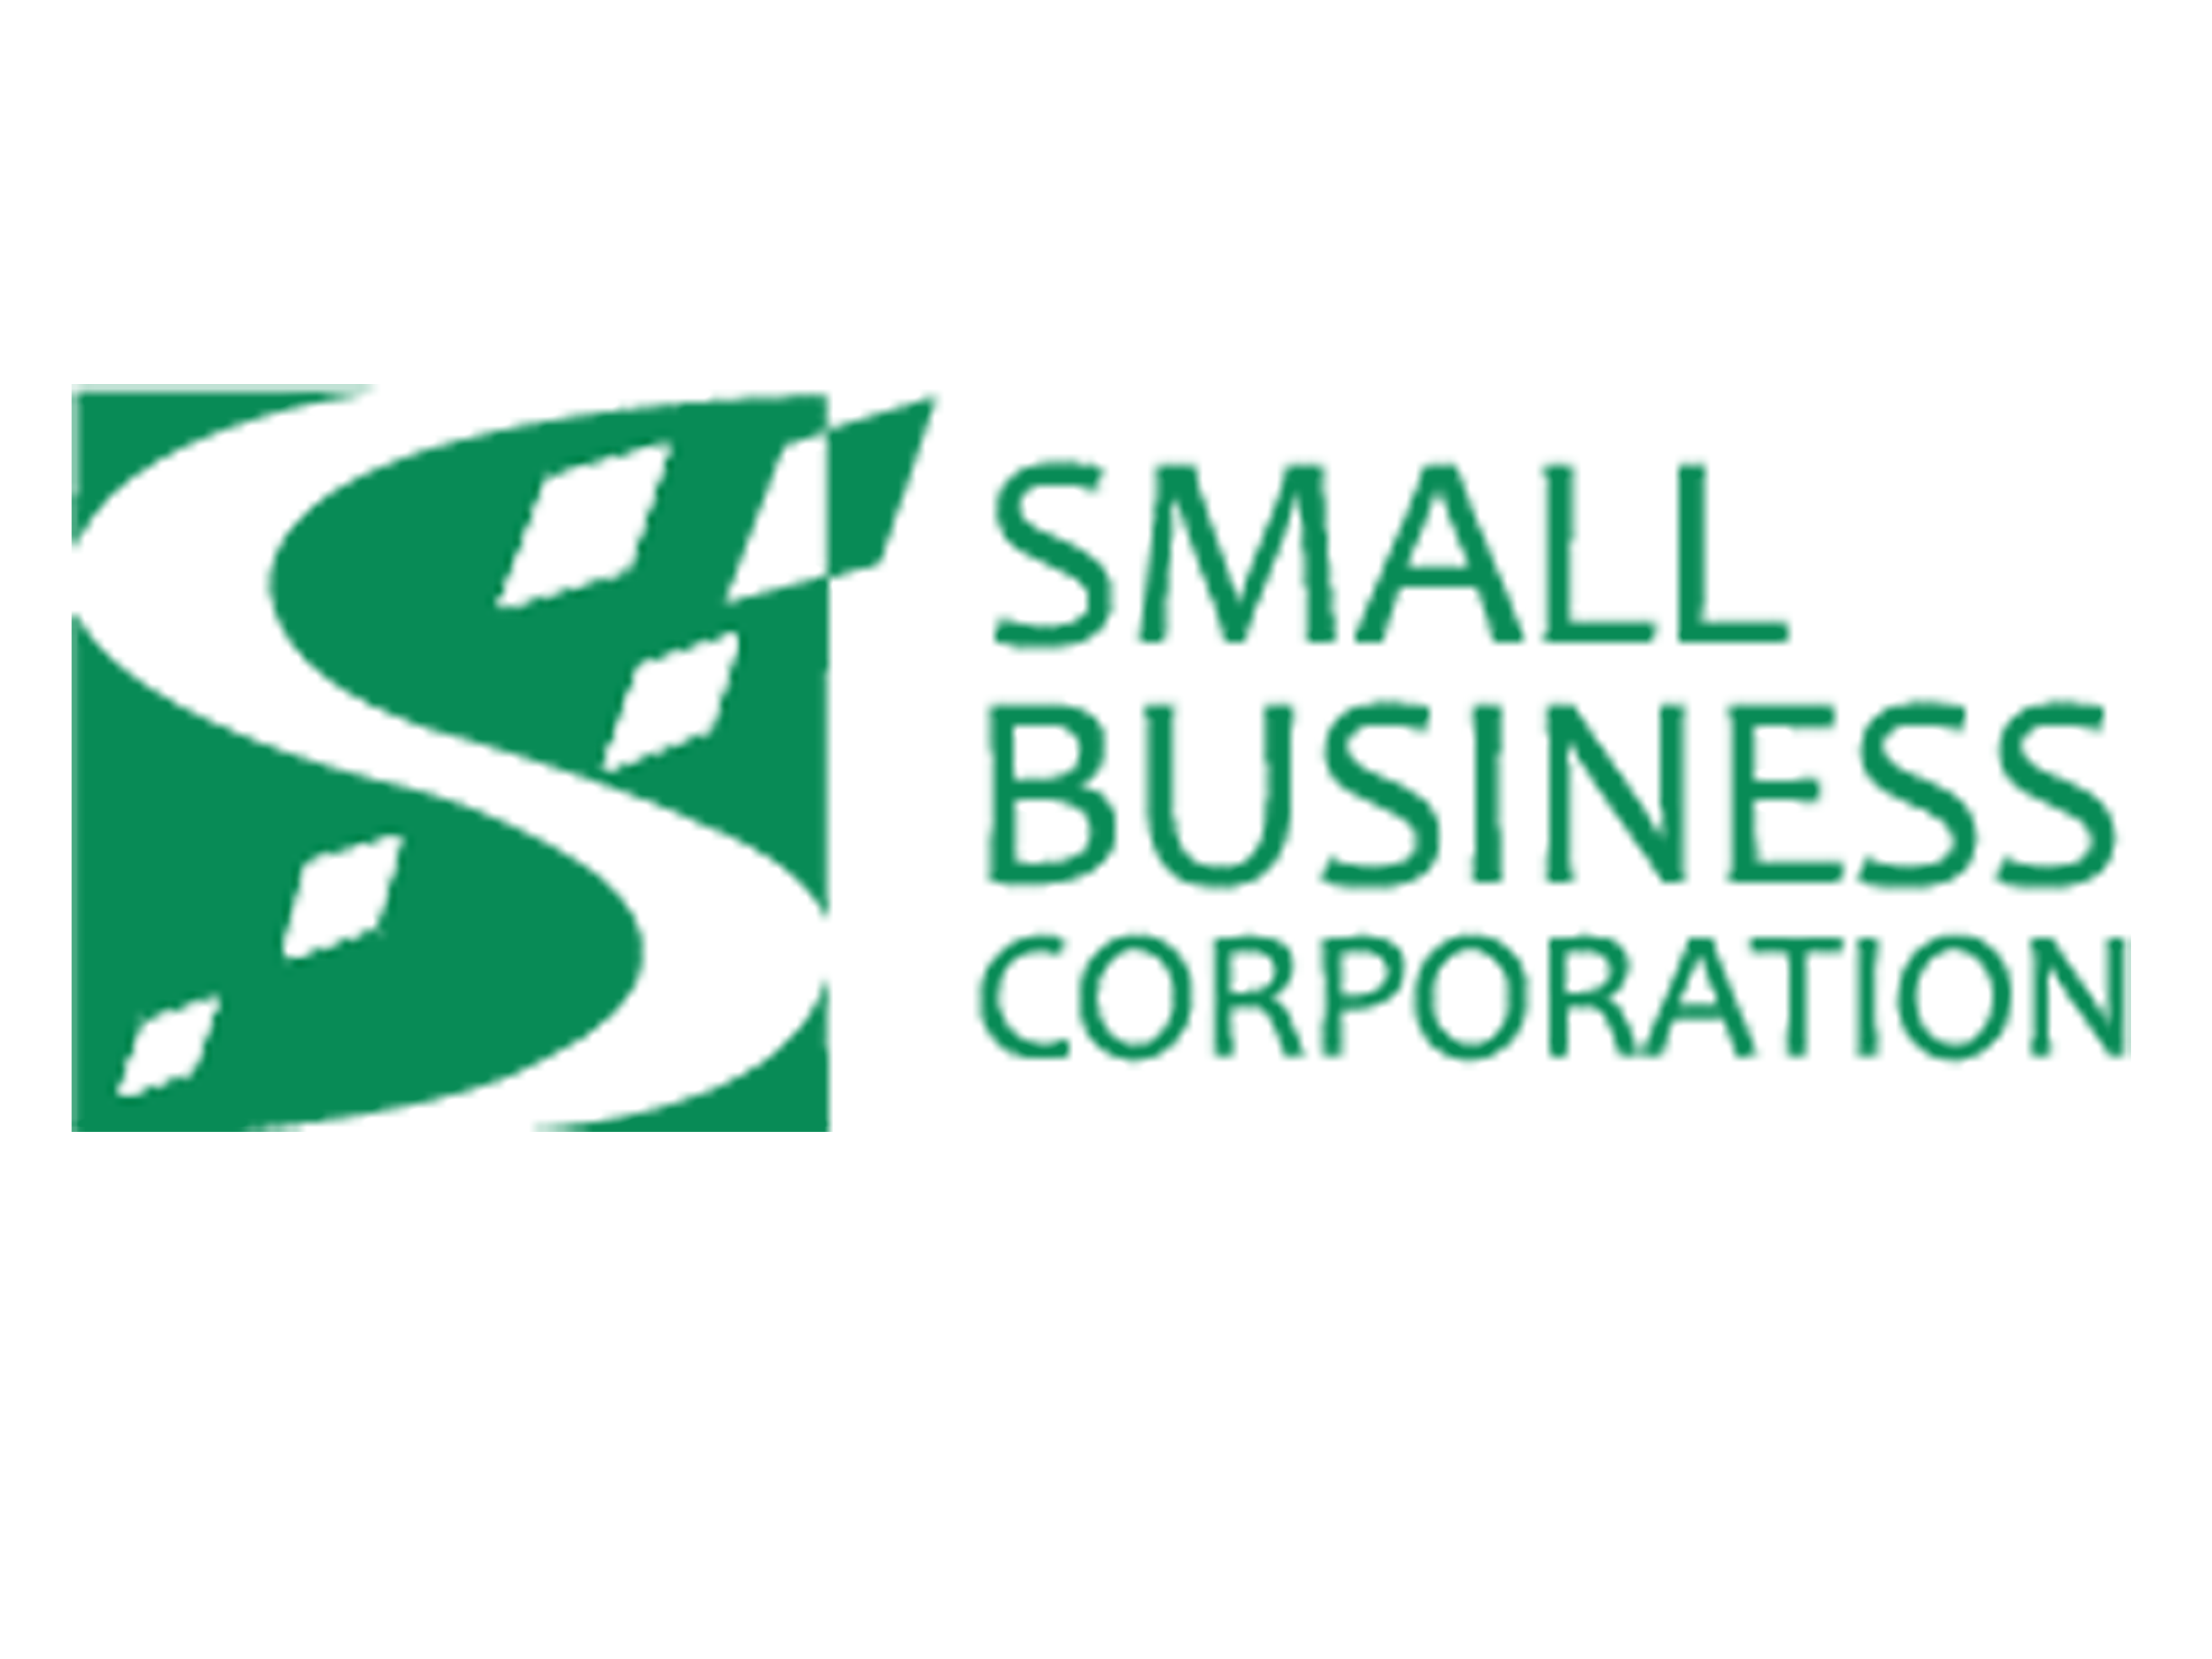 adfiap welcomes back small business corporation adfiap